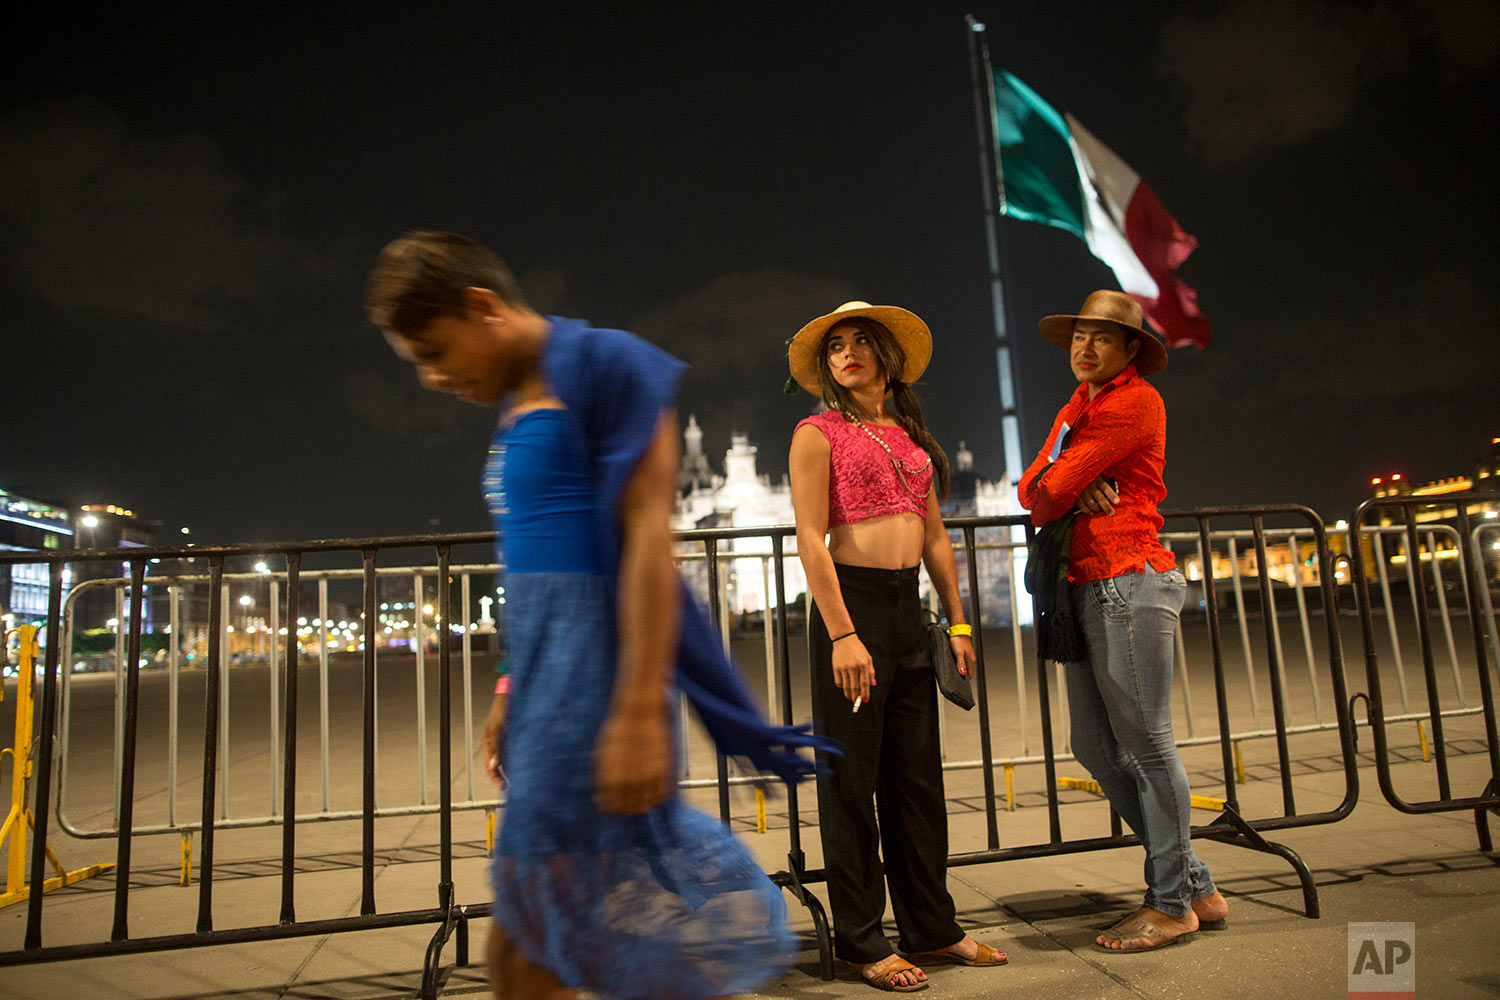 In this Nov. 6, 2018 photo, Honduran transgenders Alison Marisela, 19, from left, Naty Banegas, 16, and Nelsy Teresa Ponce, who are part of a group of 50 or so LGBTQ migrants  traveling with the Central American migrants caravan hoping to reach the U.S. border, visit the Zocalo, during a rest day for the migrants, in Mexico City. (AP Photo/Rodrigo Abd)